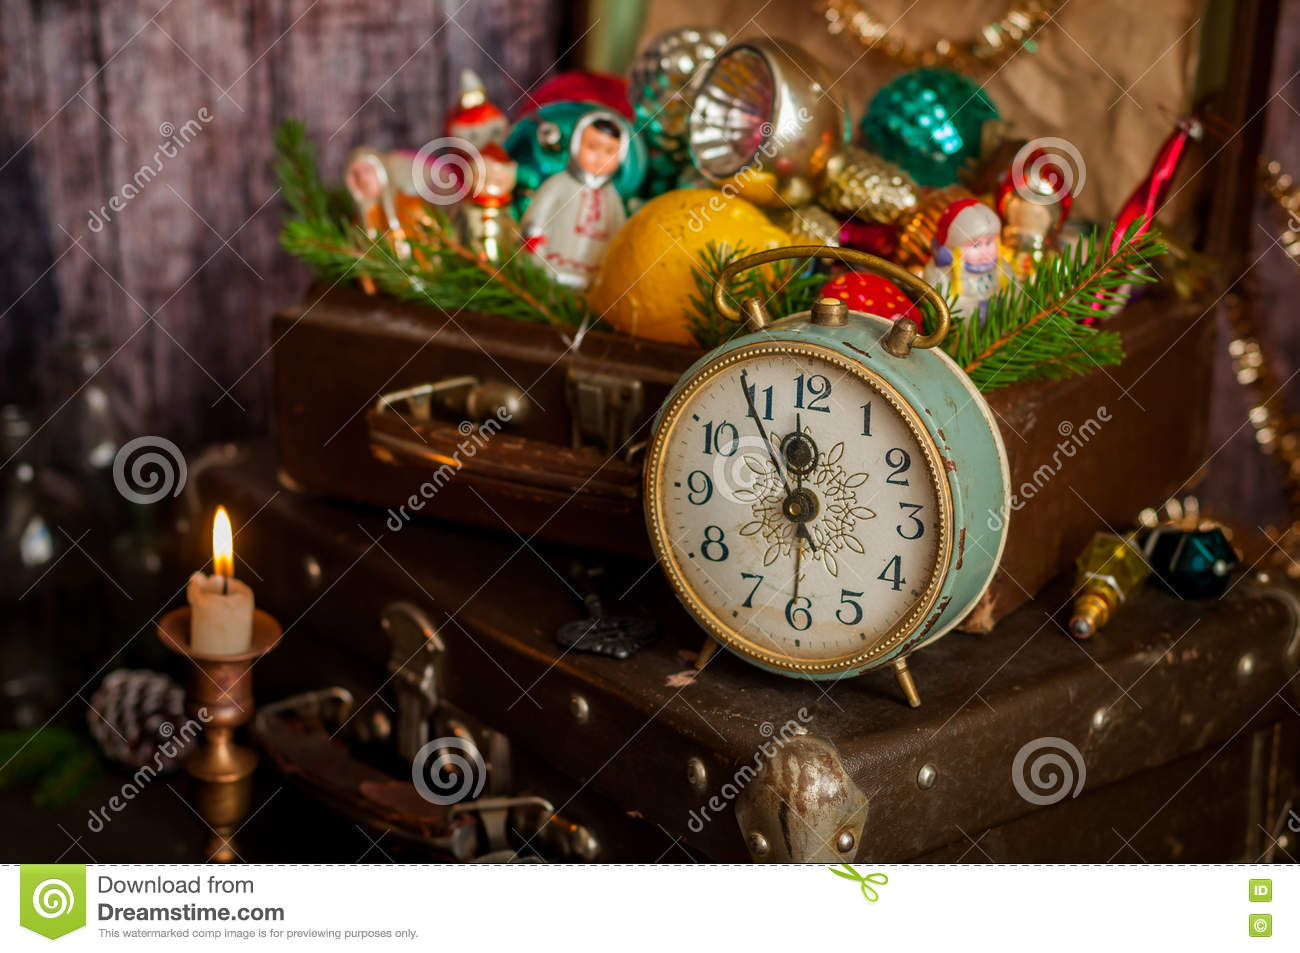 retro alarm clock vintage leather suitcases old fashioned christmas tree decorations copy space for your text